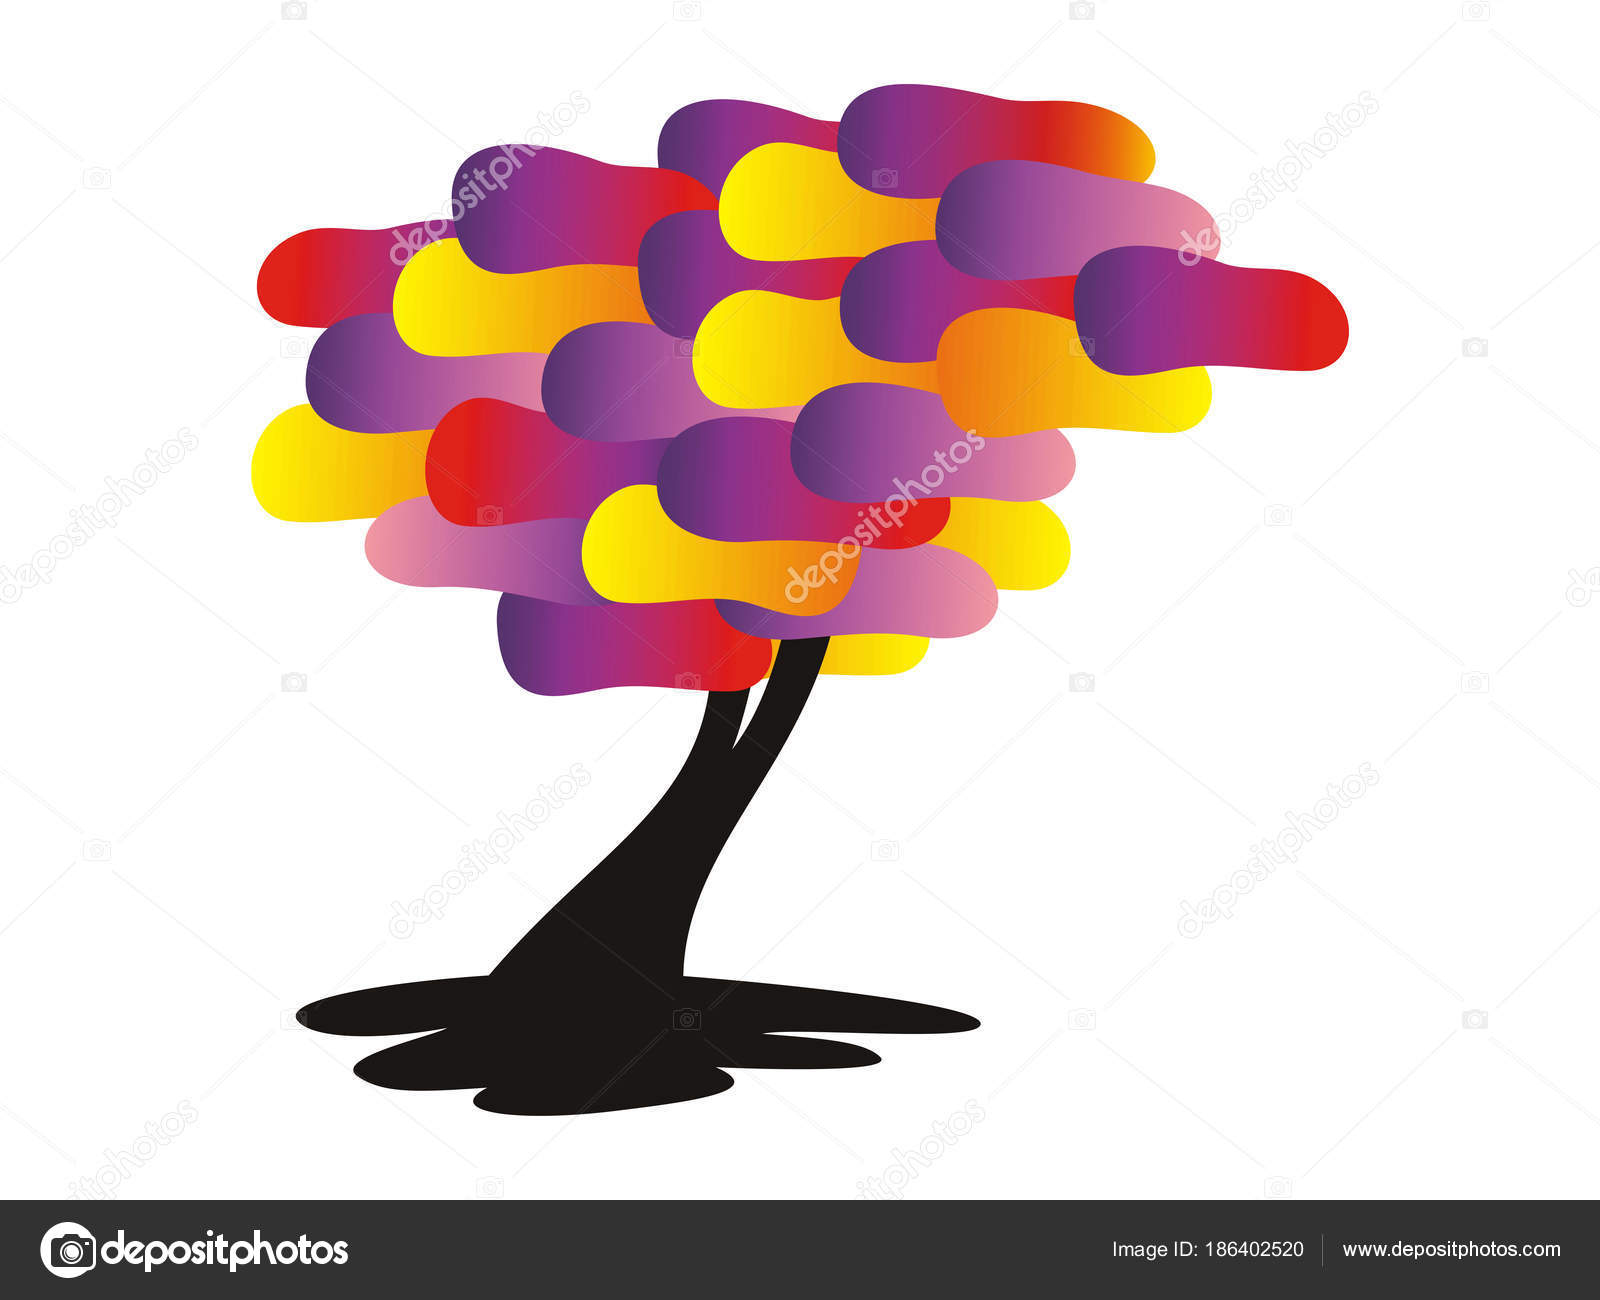 Cartoon Tree Bright Colors Yellow Blue Red Purple Tree Life Stock Photo C Alef88 186402520 Affordable and search from millions of royalty free images, photos and vectors. https depositphotos com 186402520 stock photo tree bright colors yellow blue html